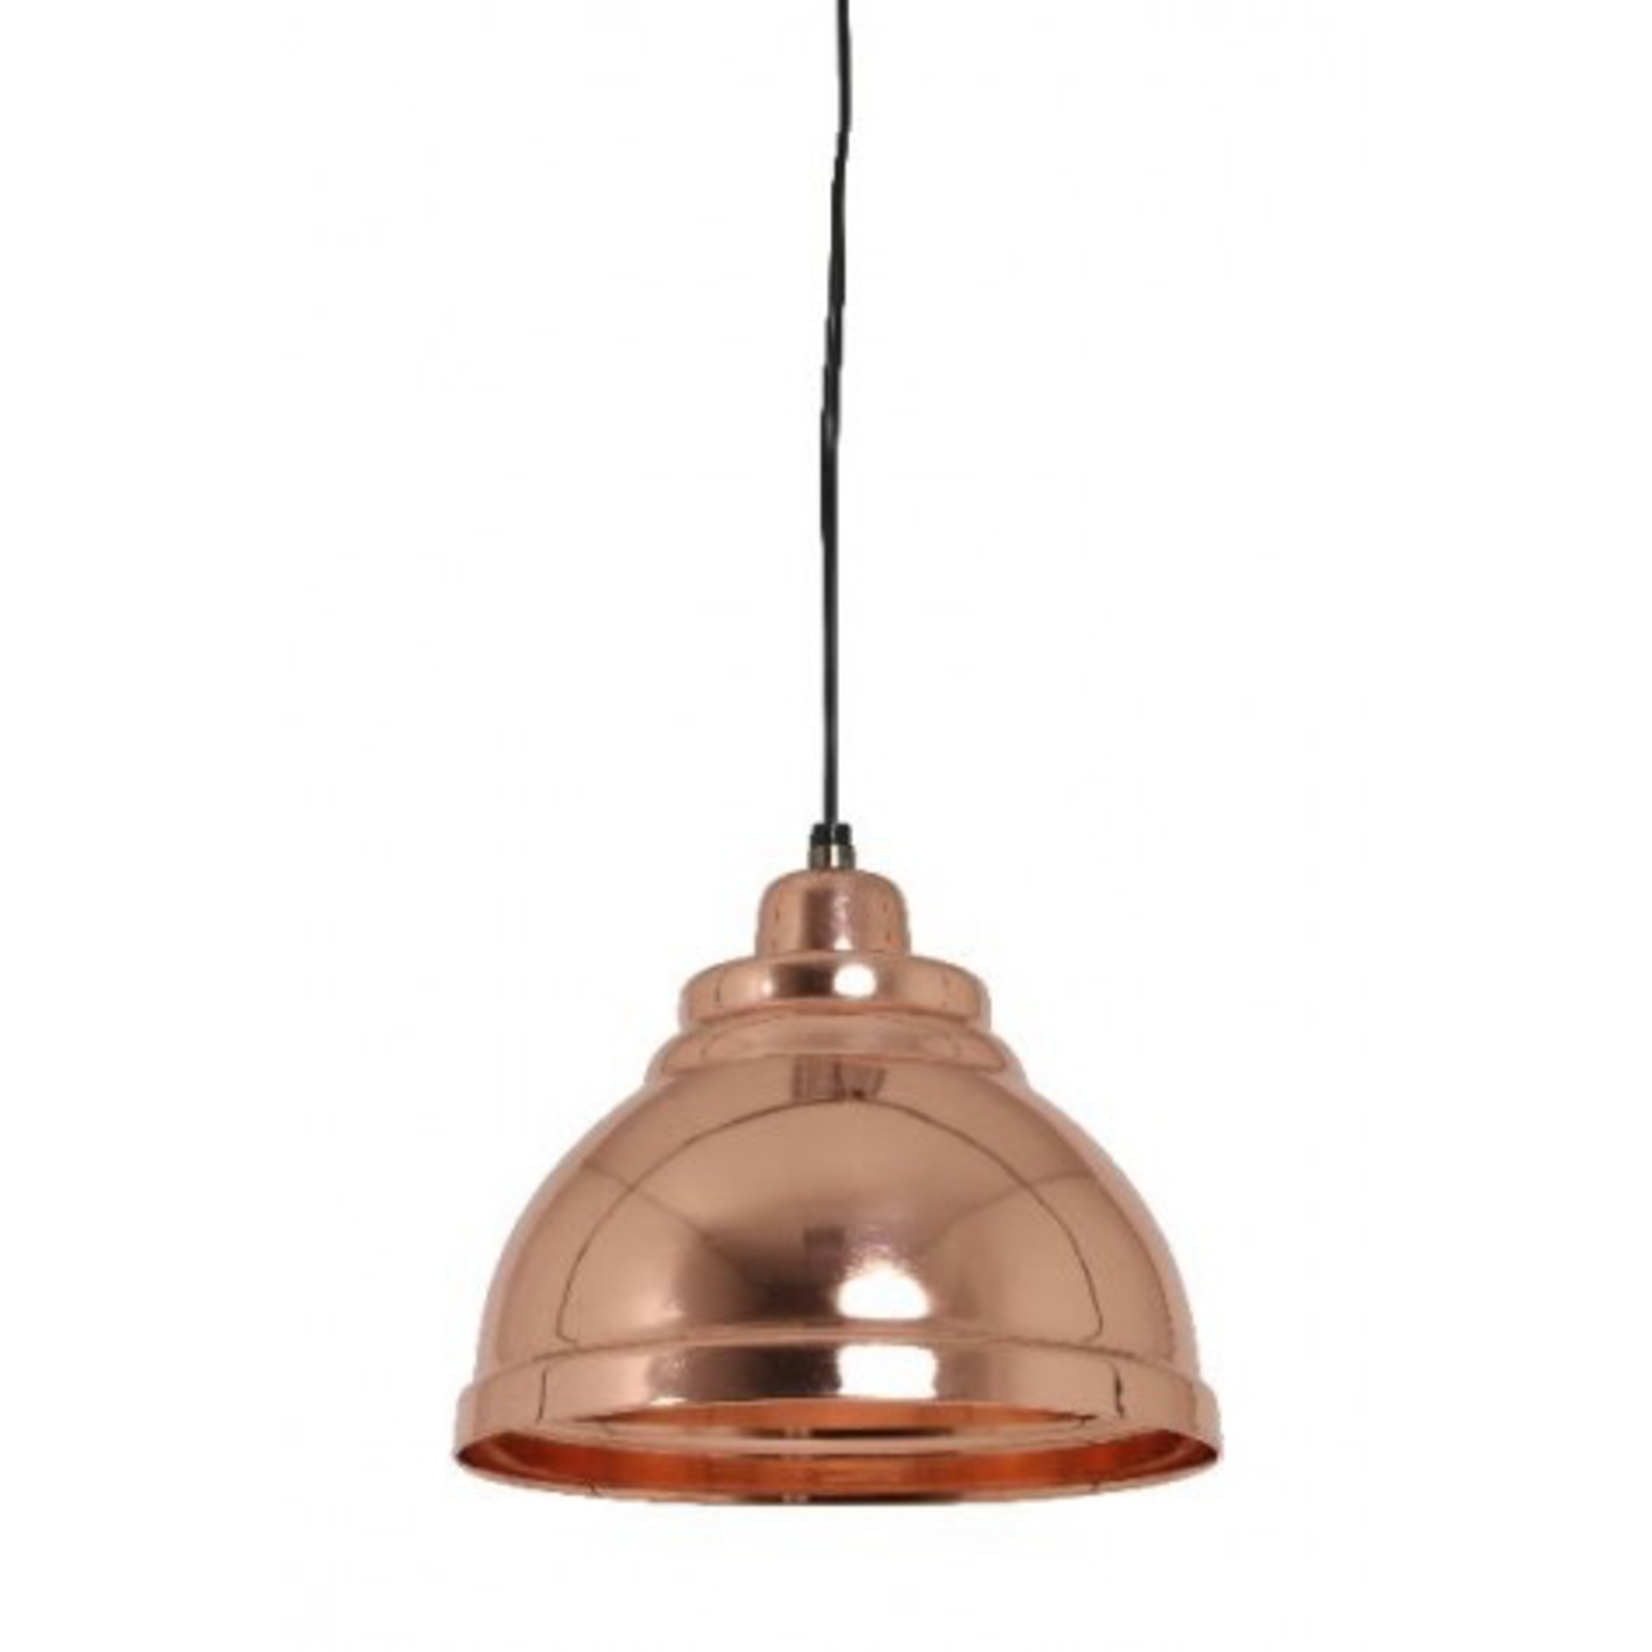 Light & Living DISCOUNTED 30% off Hanging lamp 22x14 cm YILL rose gold